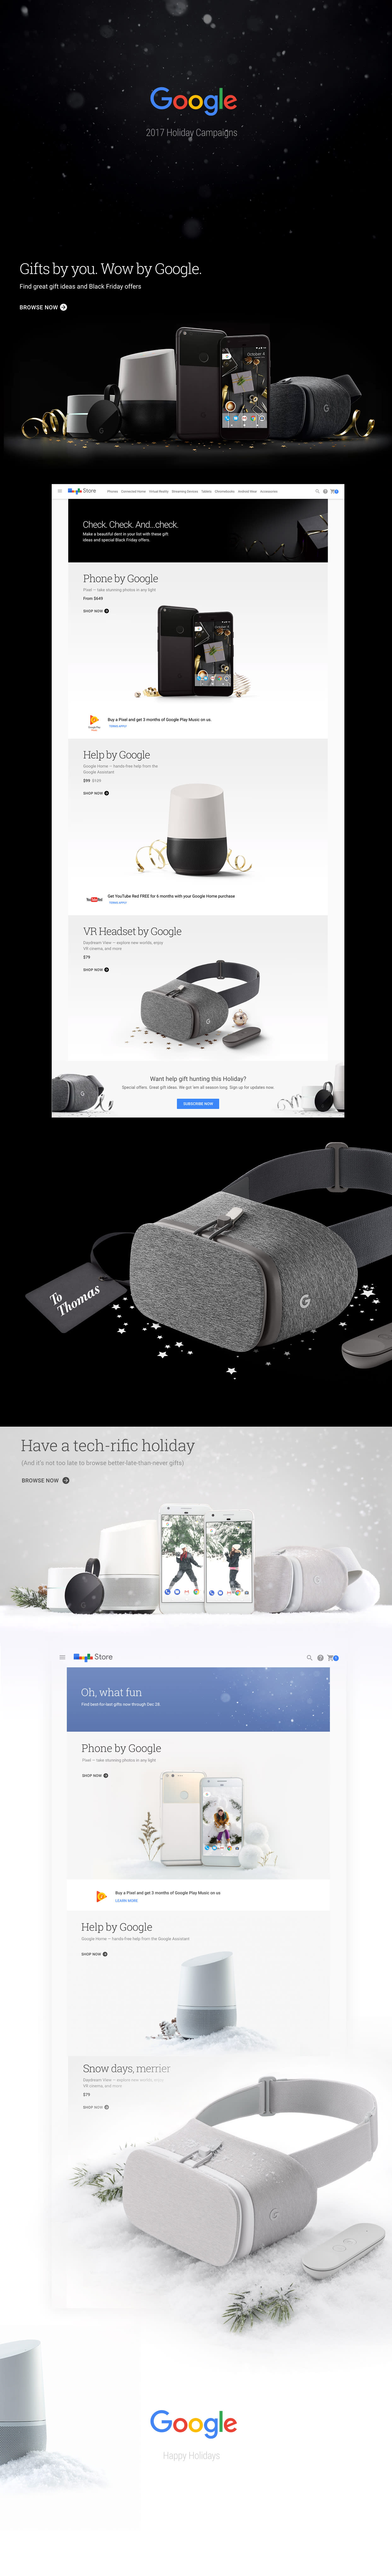 2017 Google Holiday Campaigns